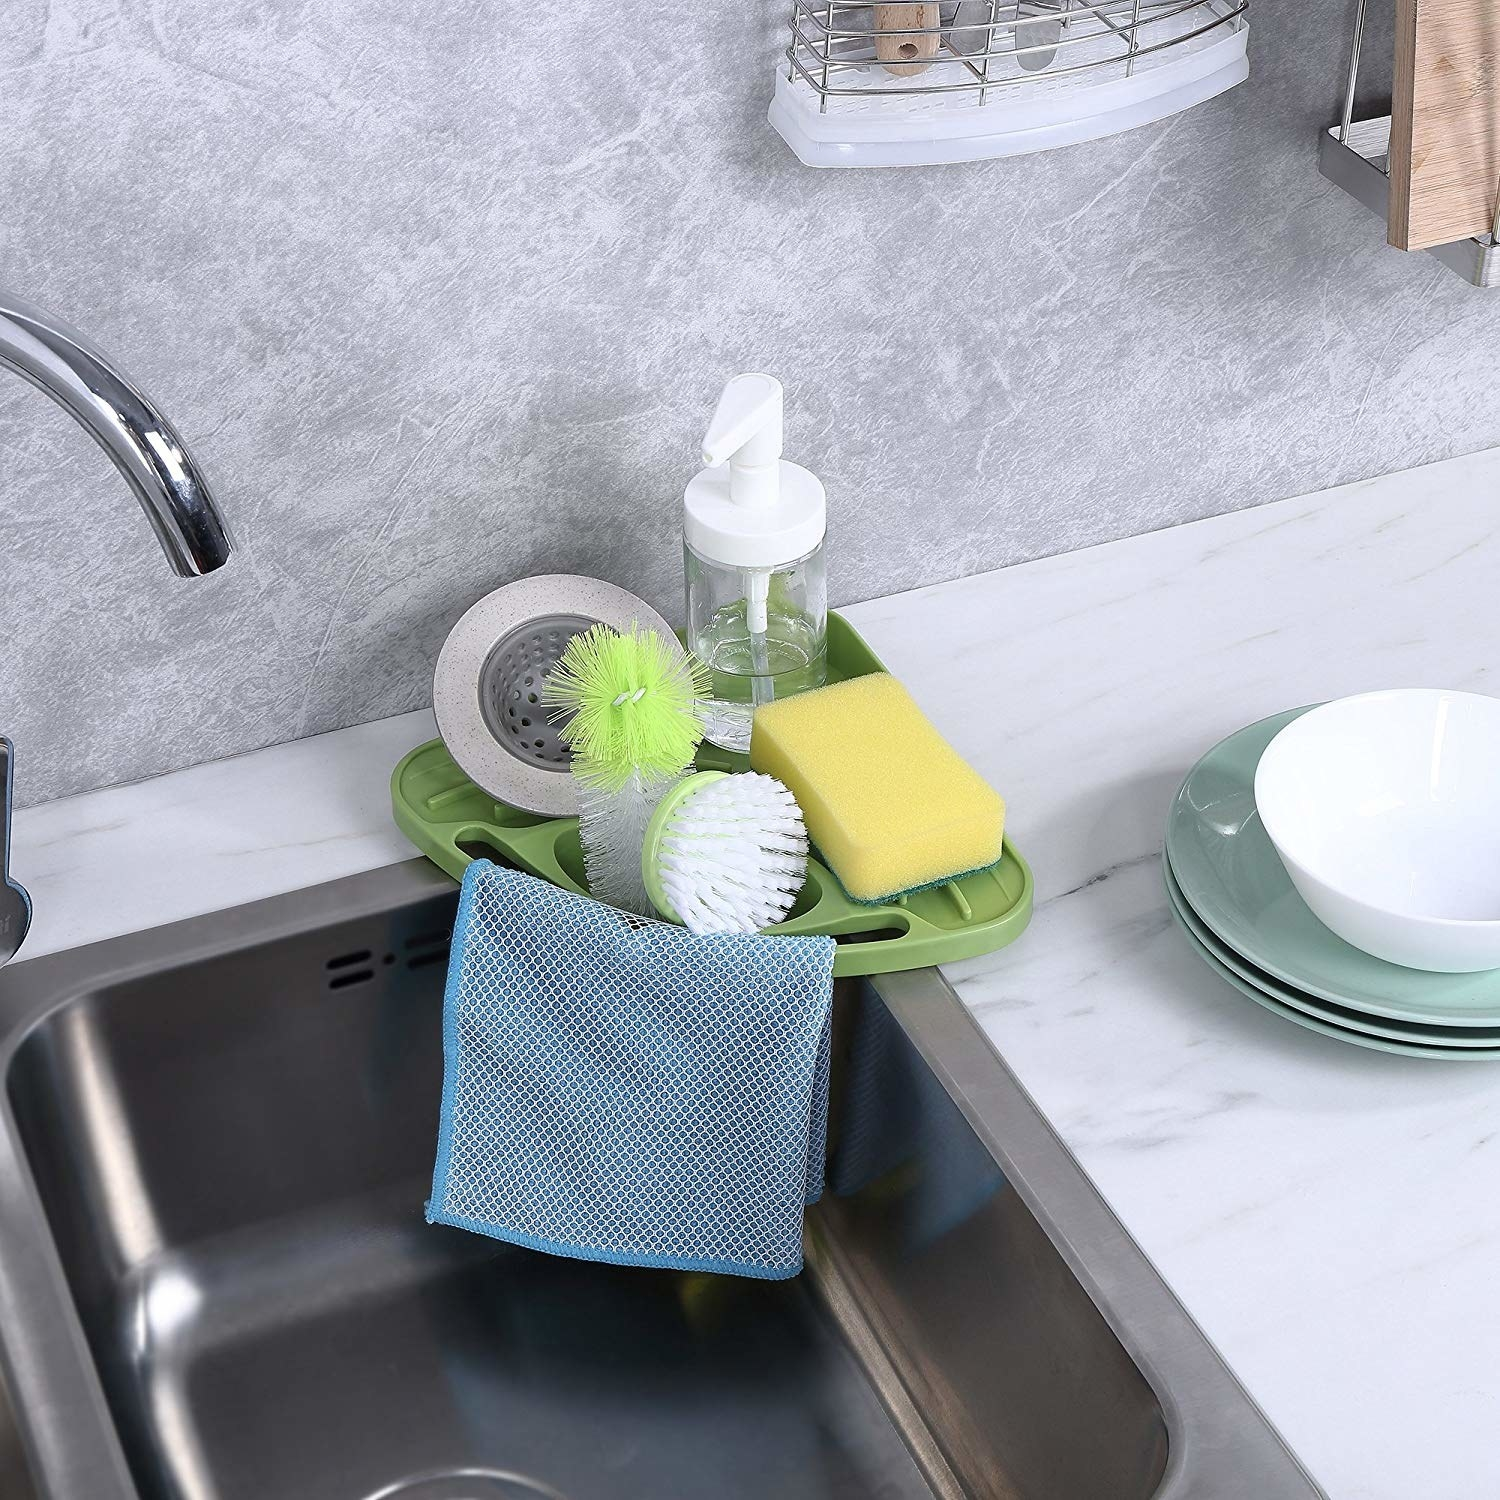 kitchen sink with a corner caddy with a dishcloth hanging from it and dish brushes, a sponge, and hand soap contained on it